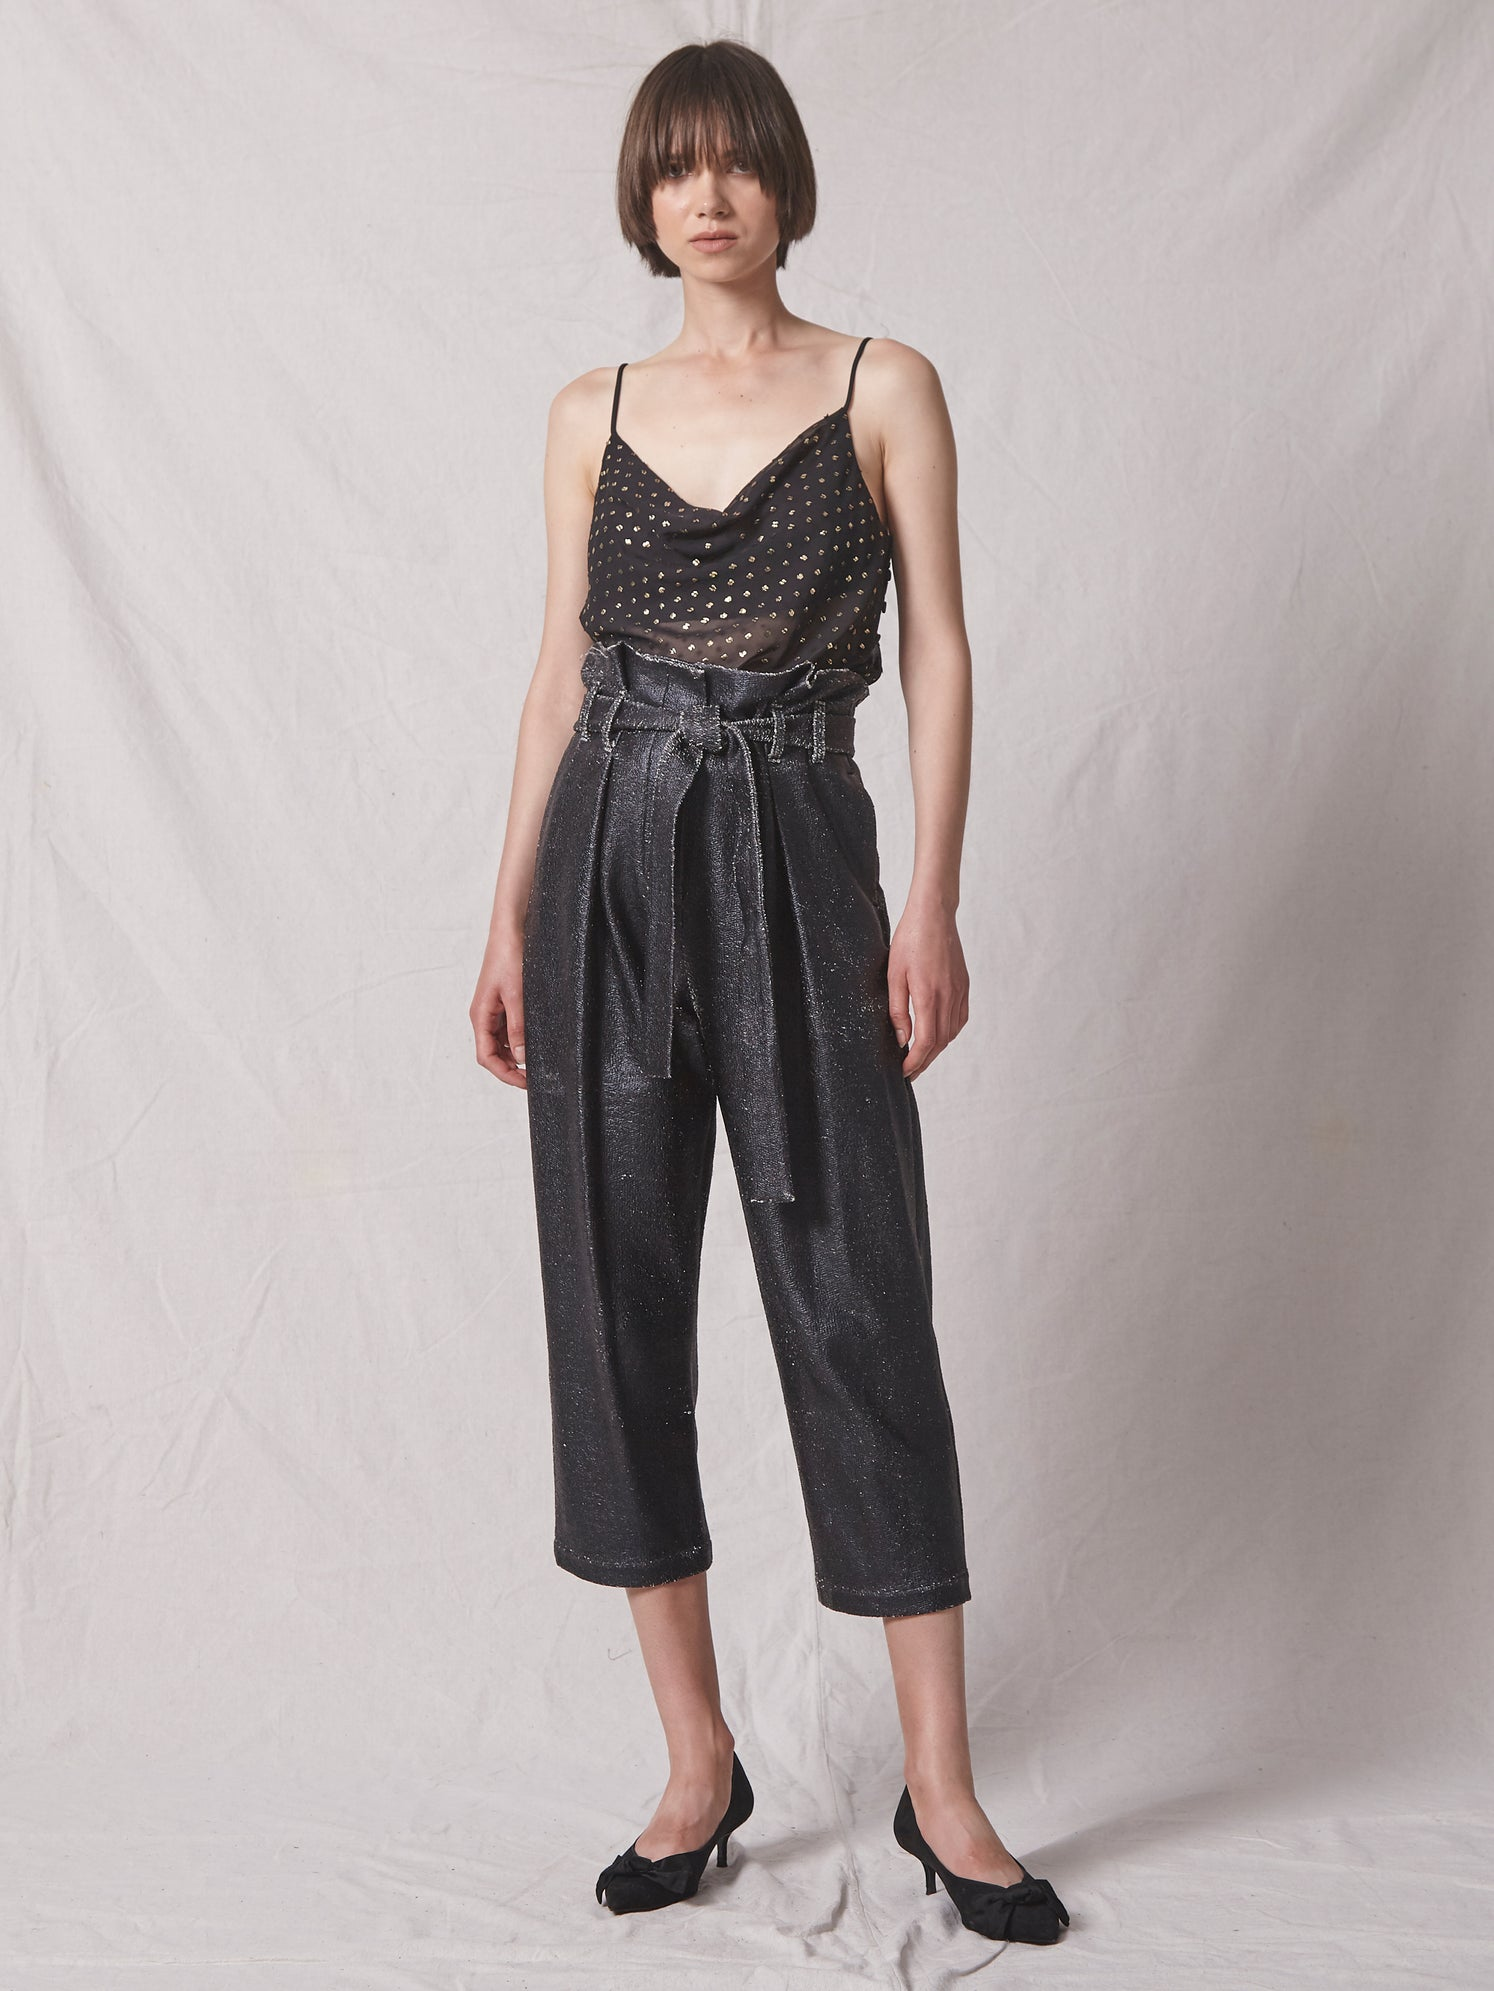 High-rise foiled knit jersey cropped pant with paperbag waist and drapey tie belt